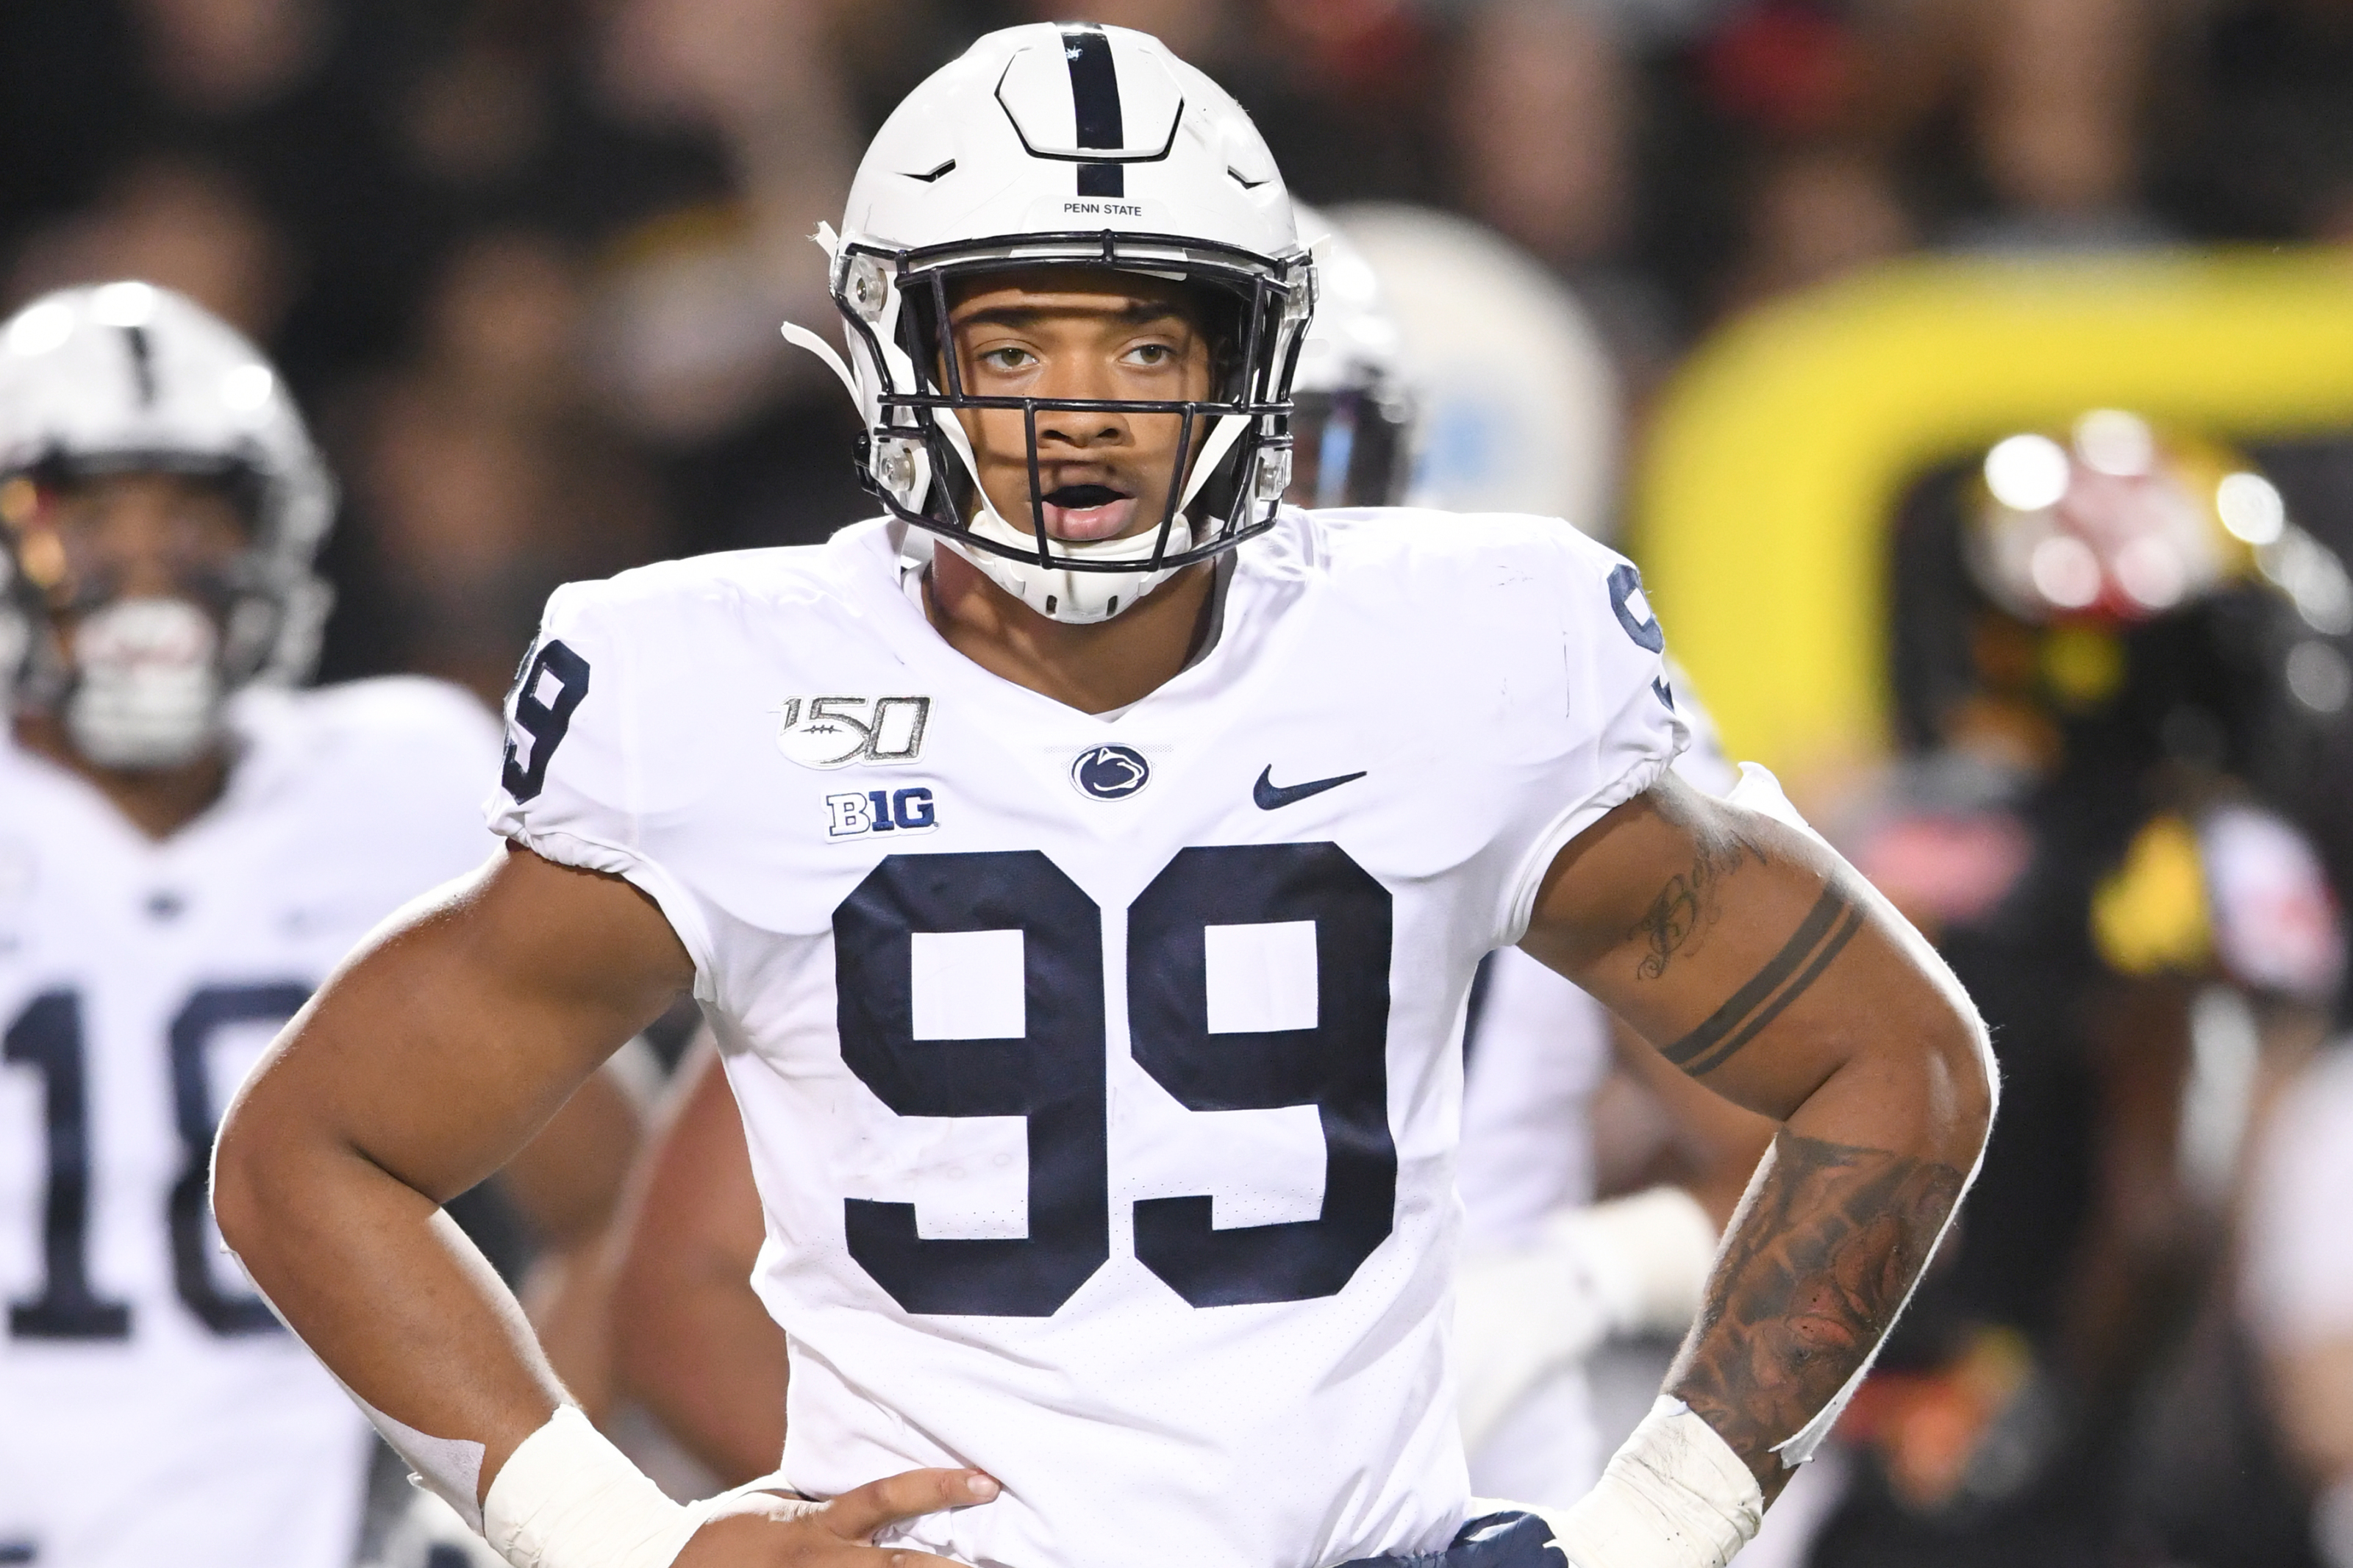 Baltimore Ravens scouting reports: Yetur Gross-Matos an athletic marvel